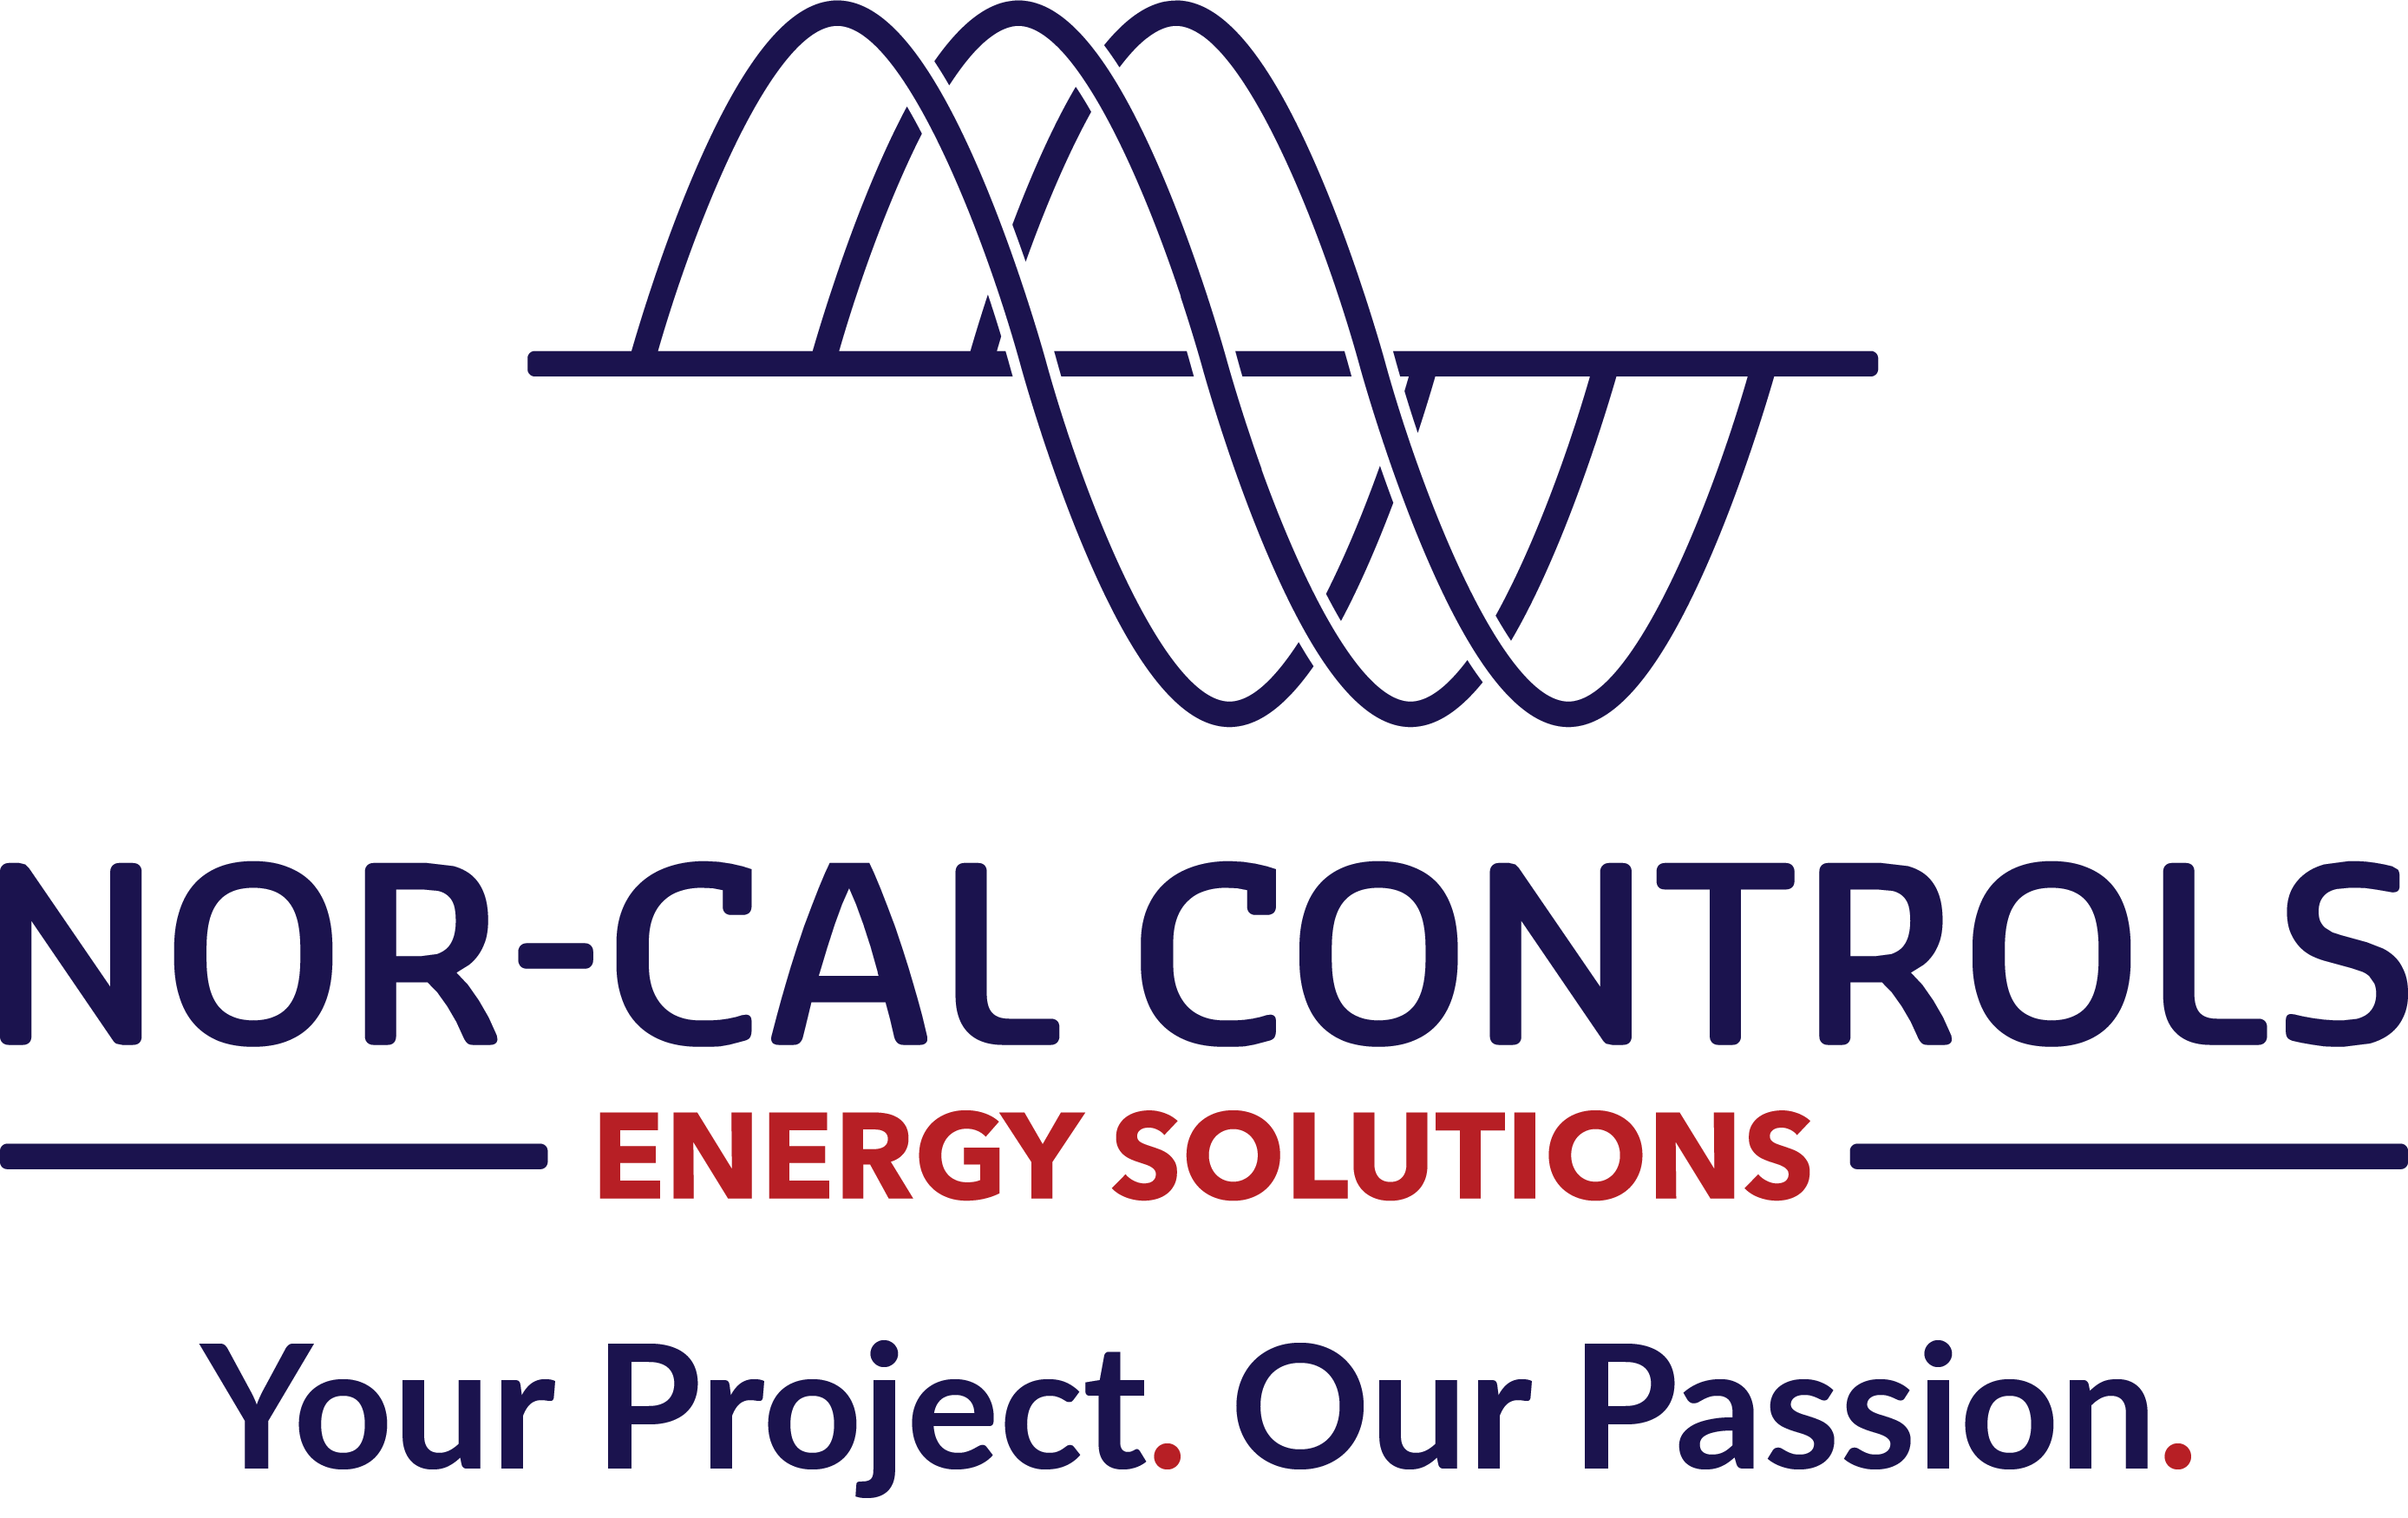 Nor-Cal_Controls-logo-tagline